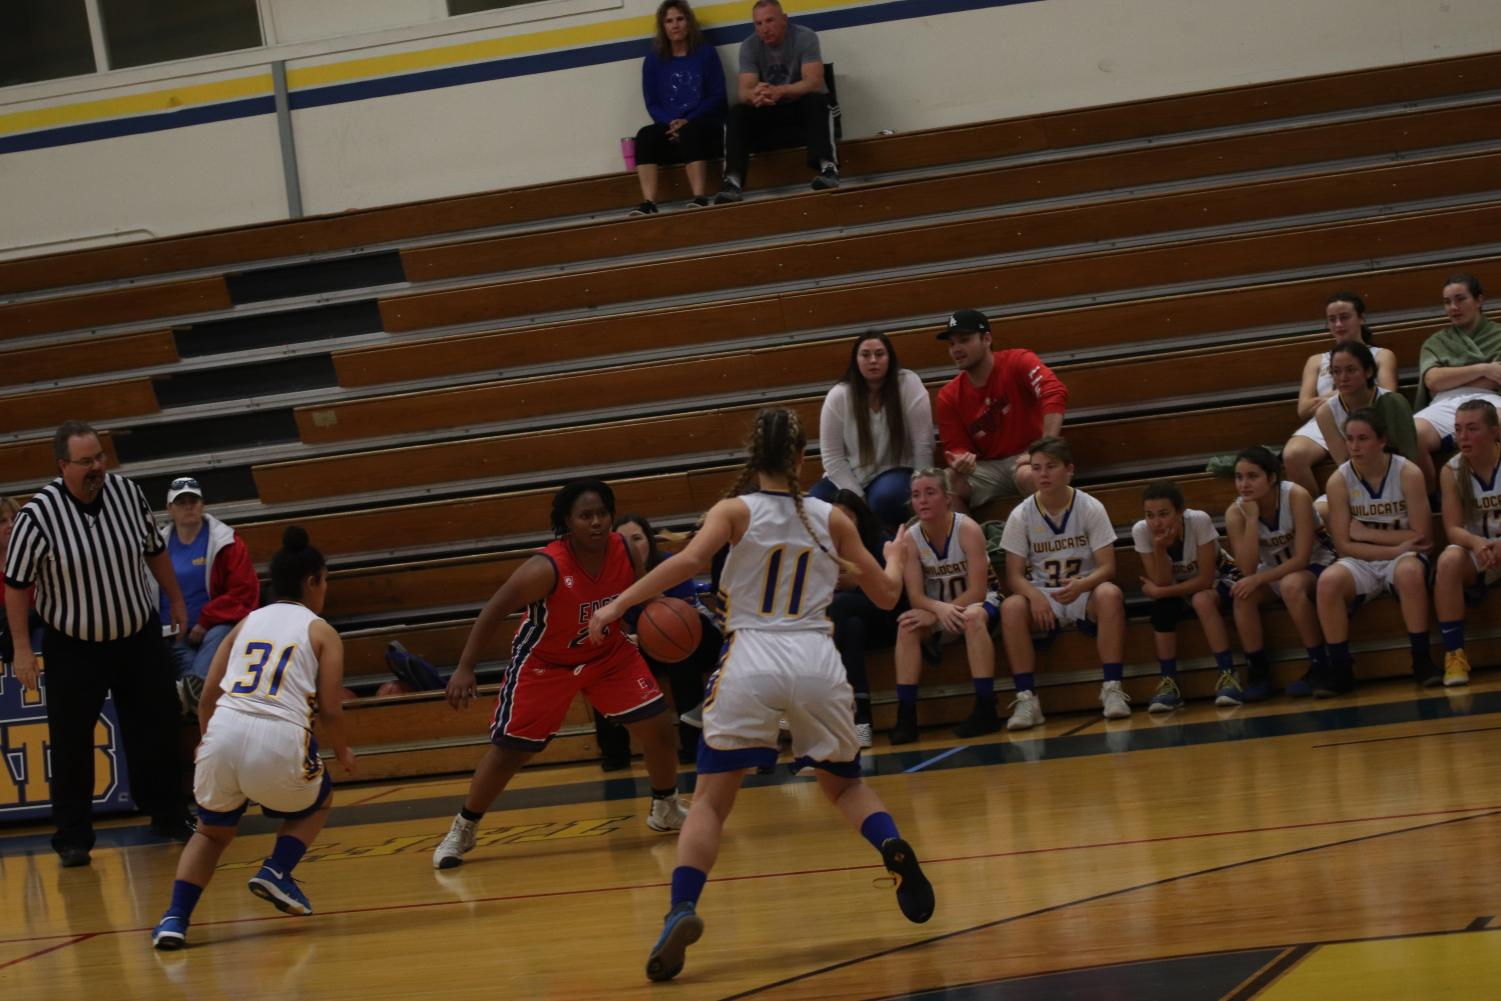 Sierra Kozloski and Alana Iotamo trying to distract the other player so they can get the ball back.